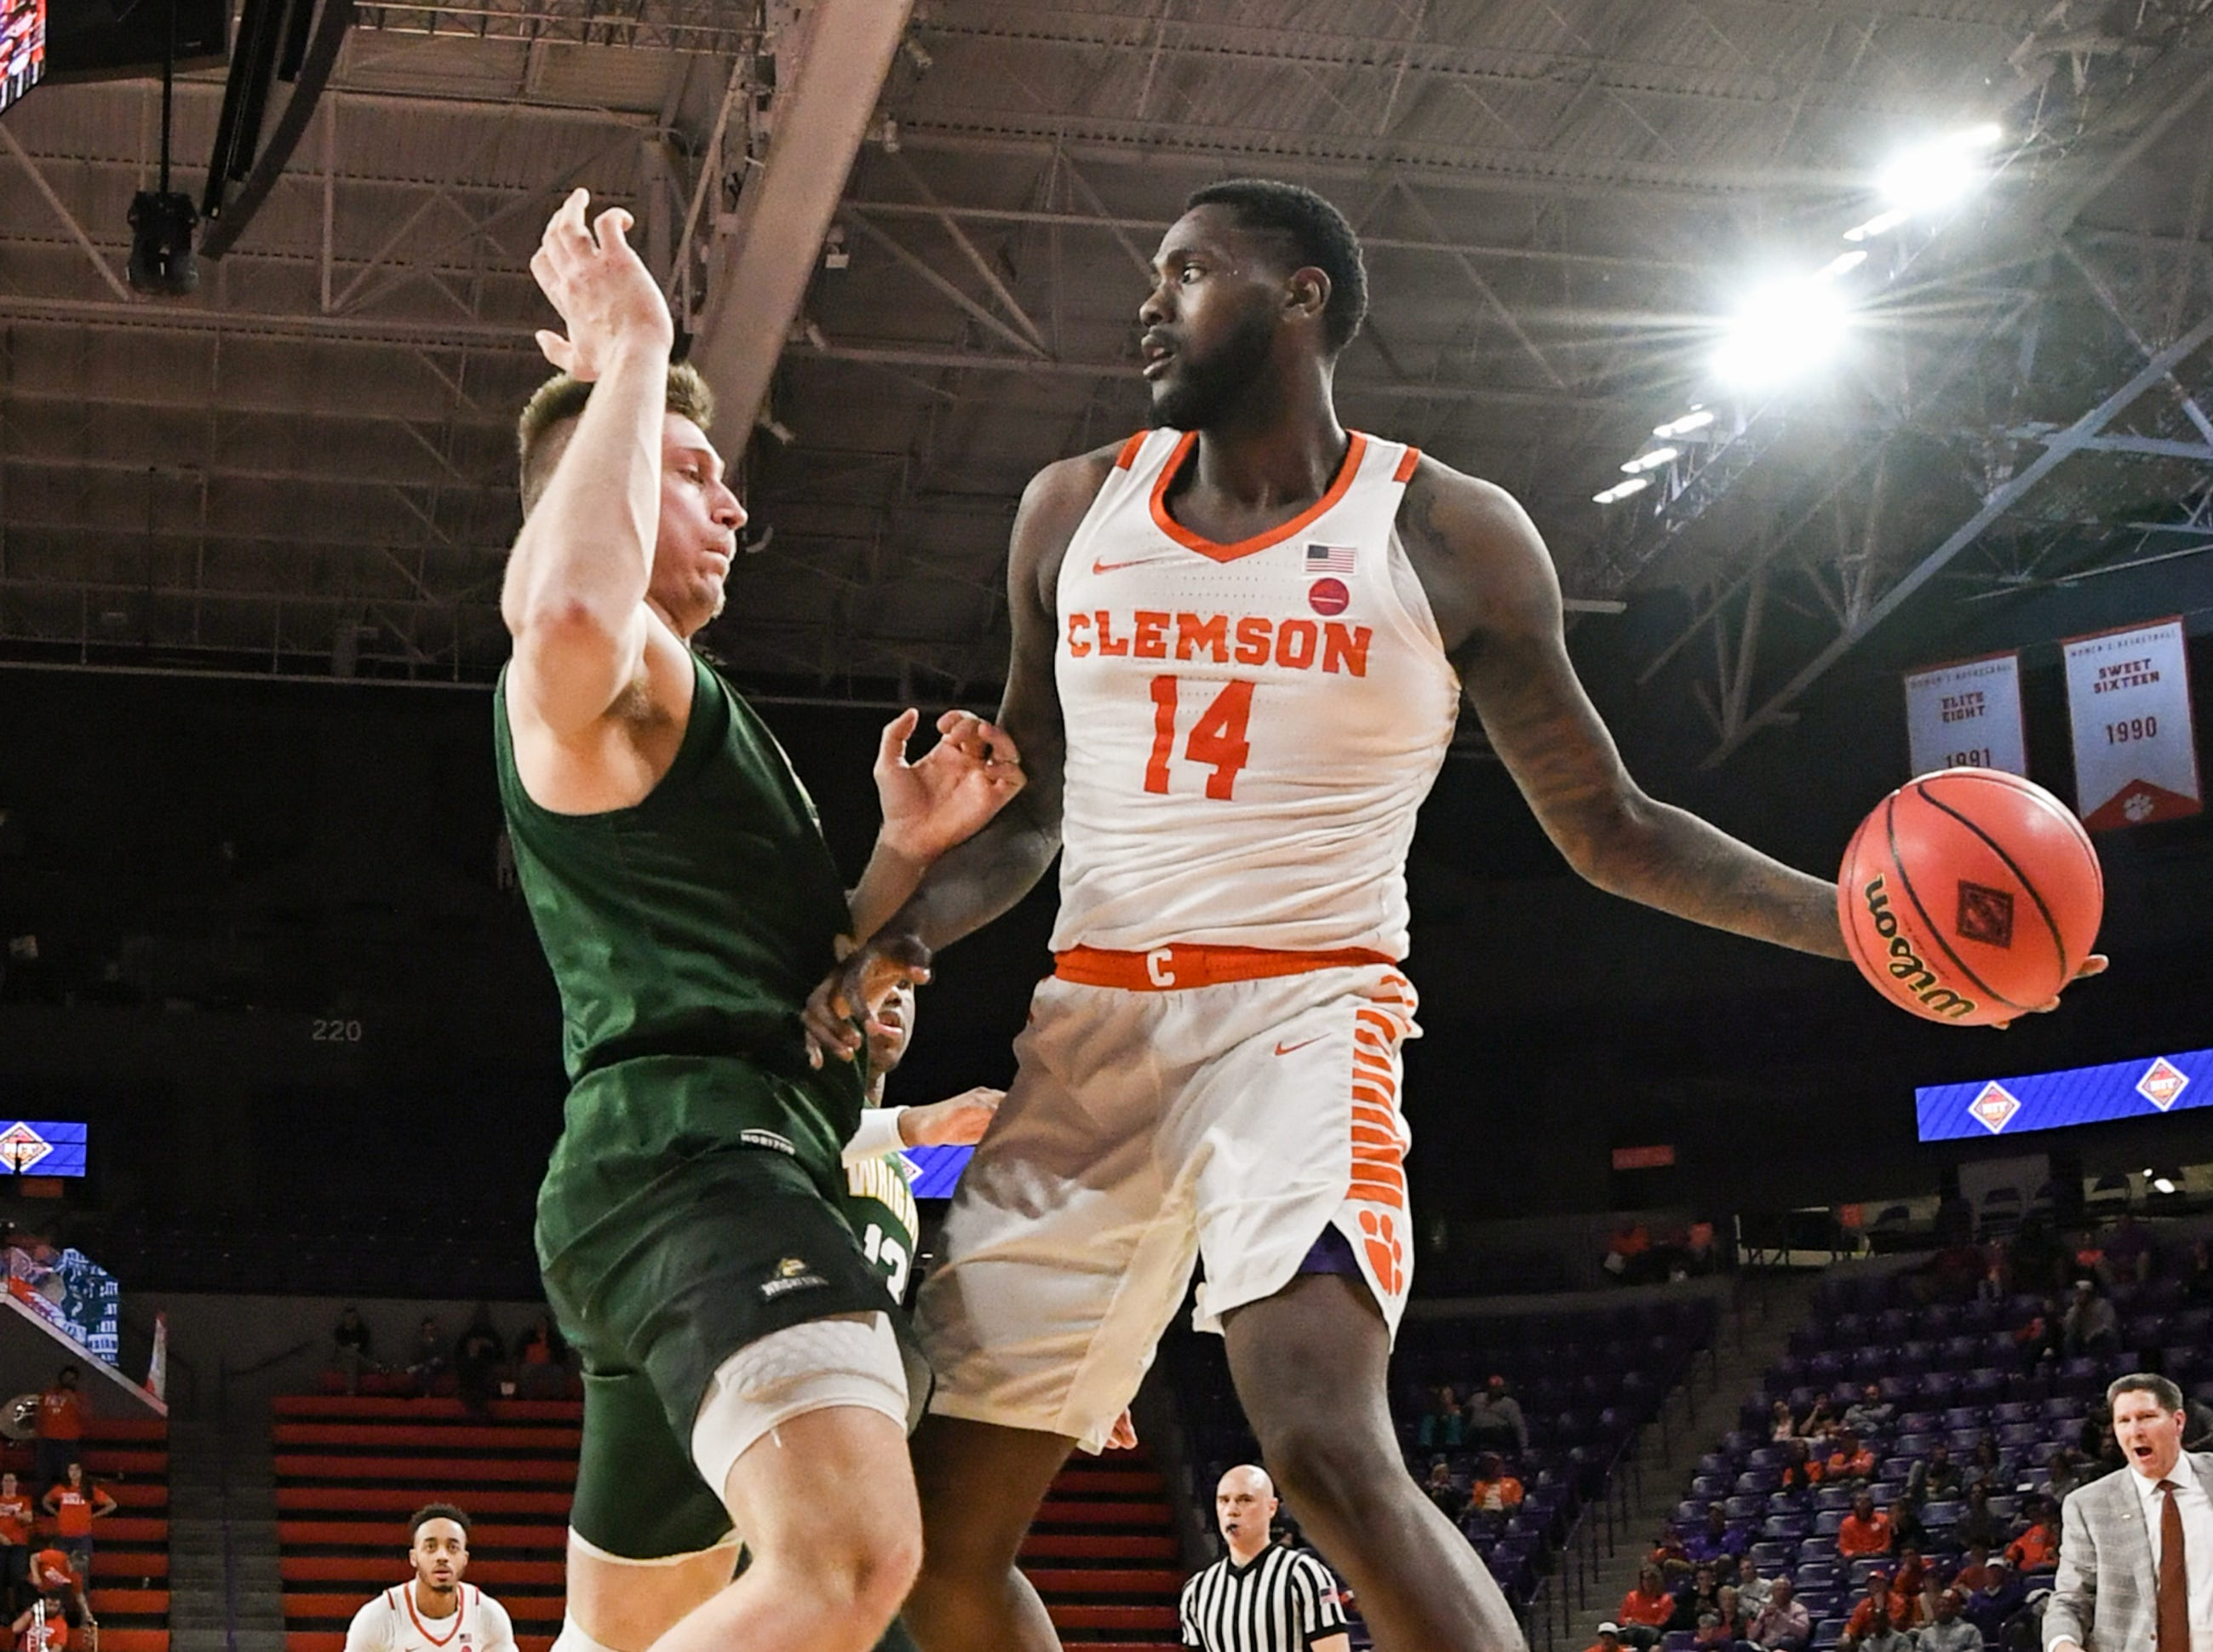 Clemson forward Elijah Thomas (14) looks to pass around Wright State center Parker Ernsthausen(22) during the second half of the NIT at Littlejohn Coliseum in Clemson Tuesday, March 19, 2019.